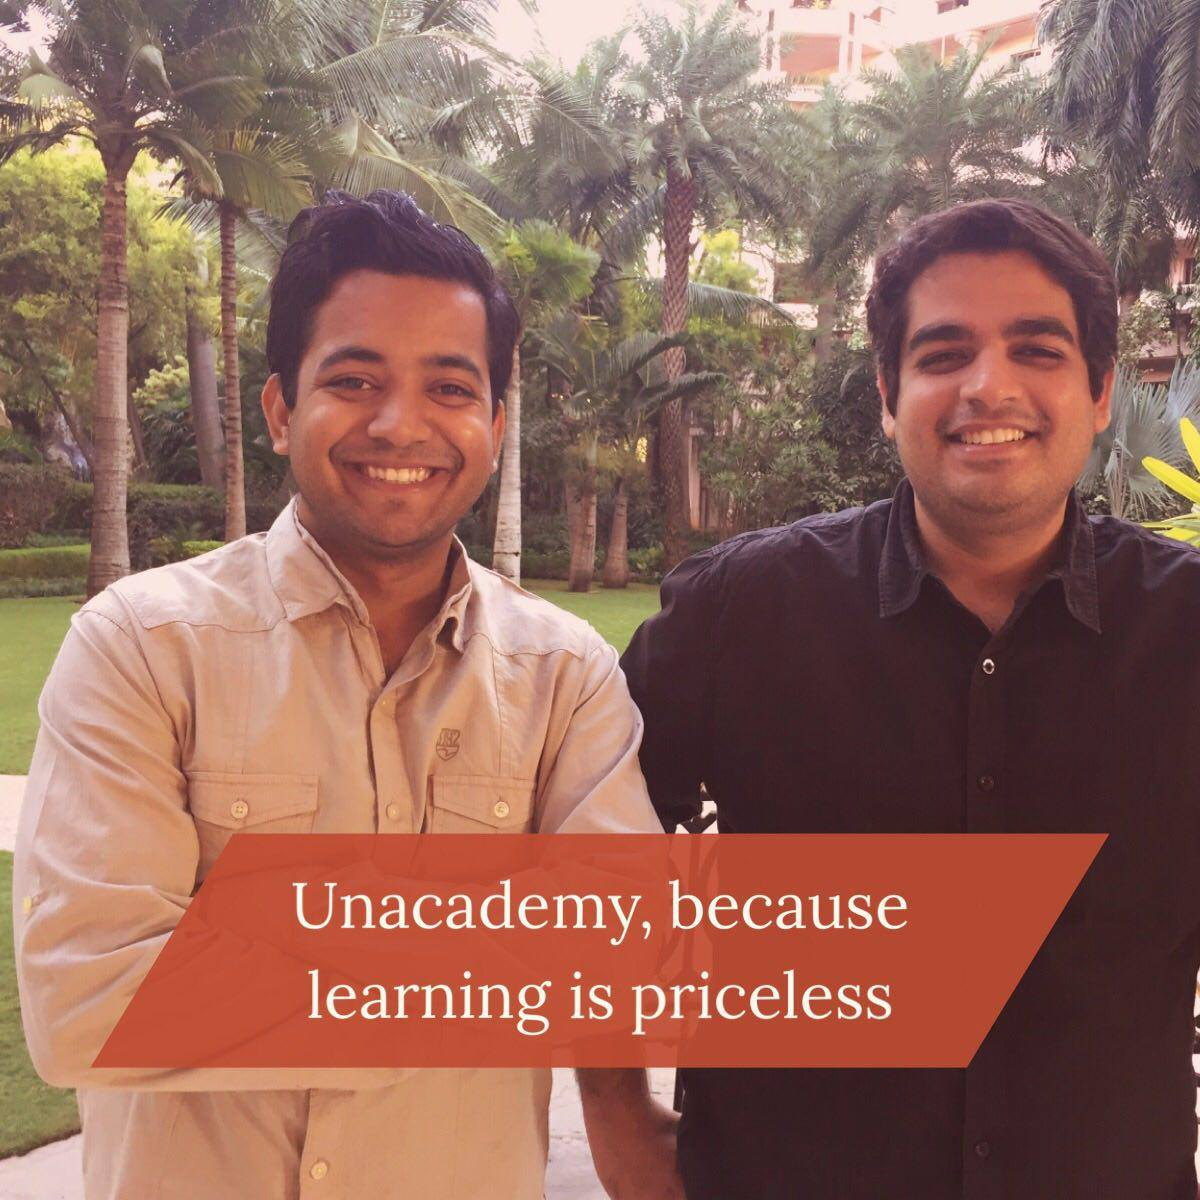 Trending! 24 year Old Roman Saini Quits IAS To Provide Free E-Tutoring #ISupportUnacademy